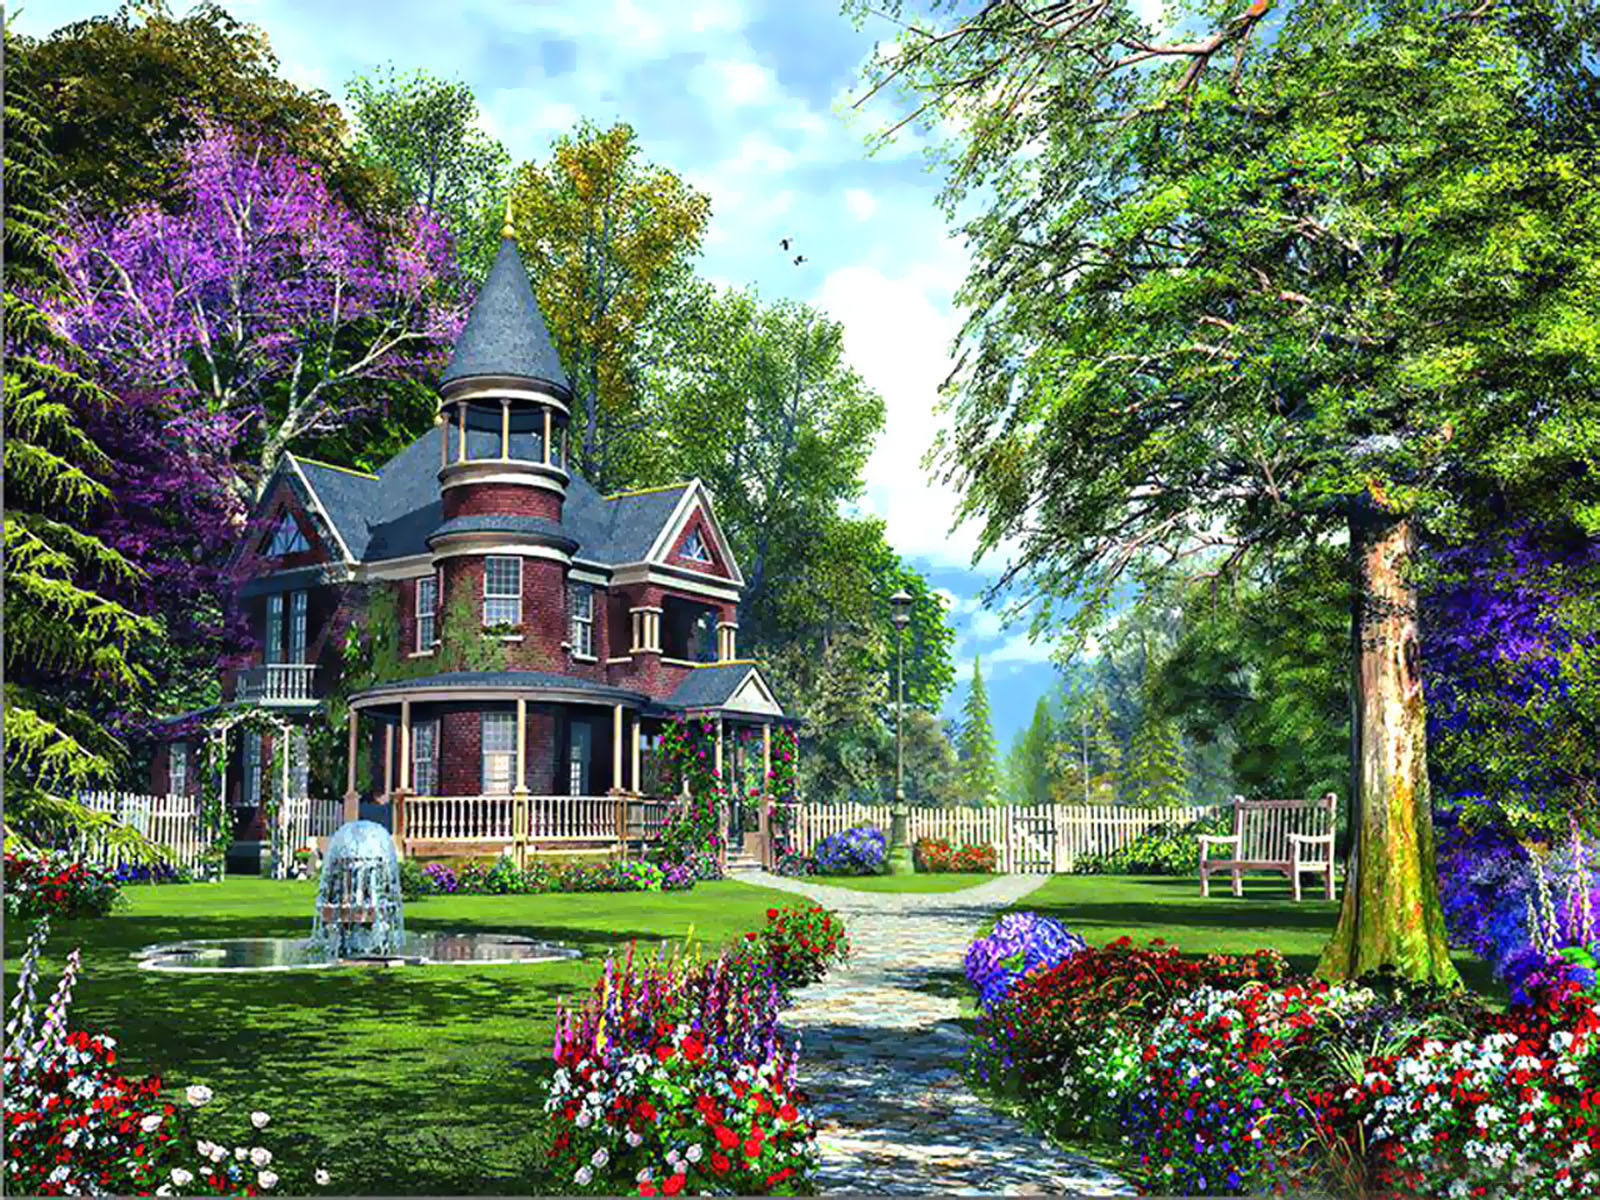 Wallpapers fair luxurious flower garden hd widescreen for Classic house with flower garden